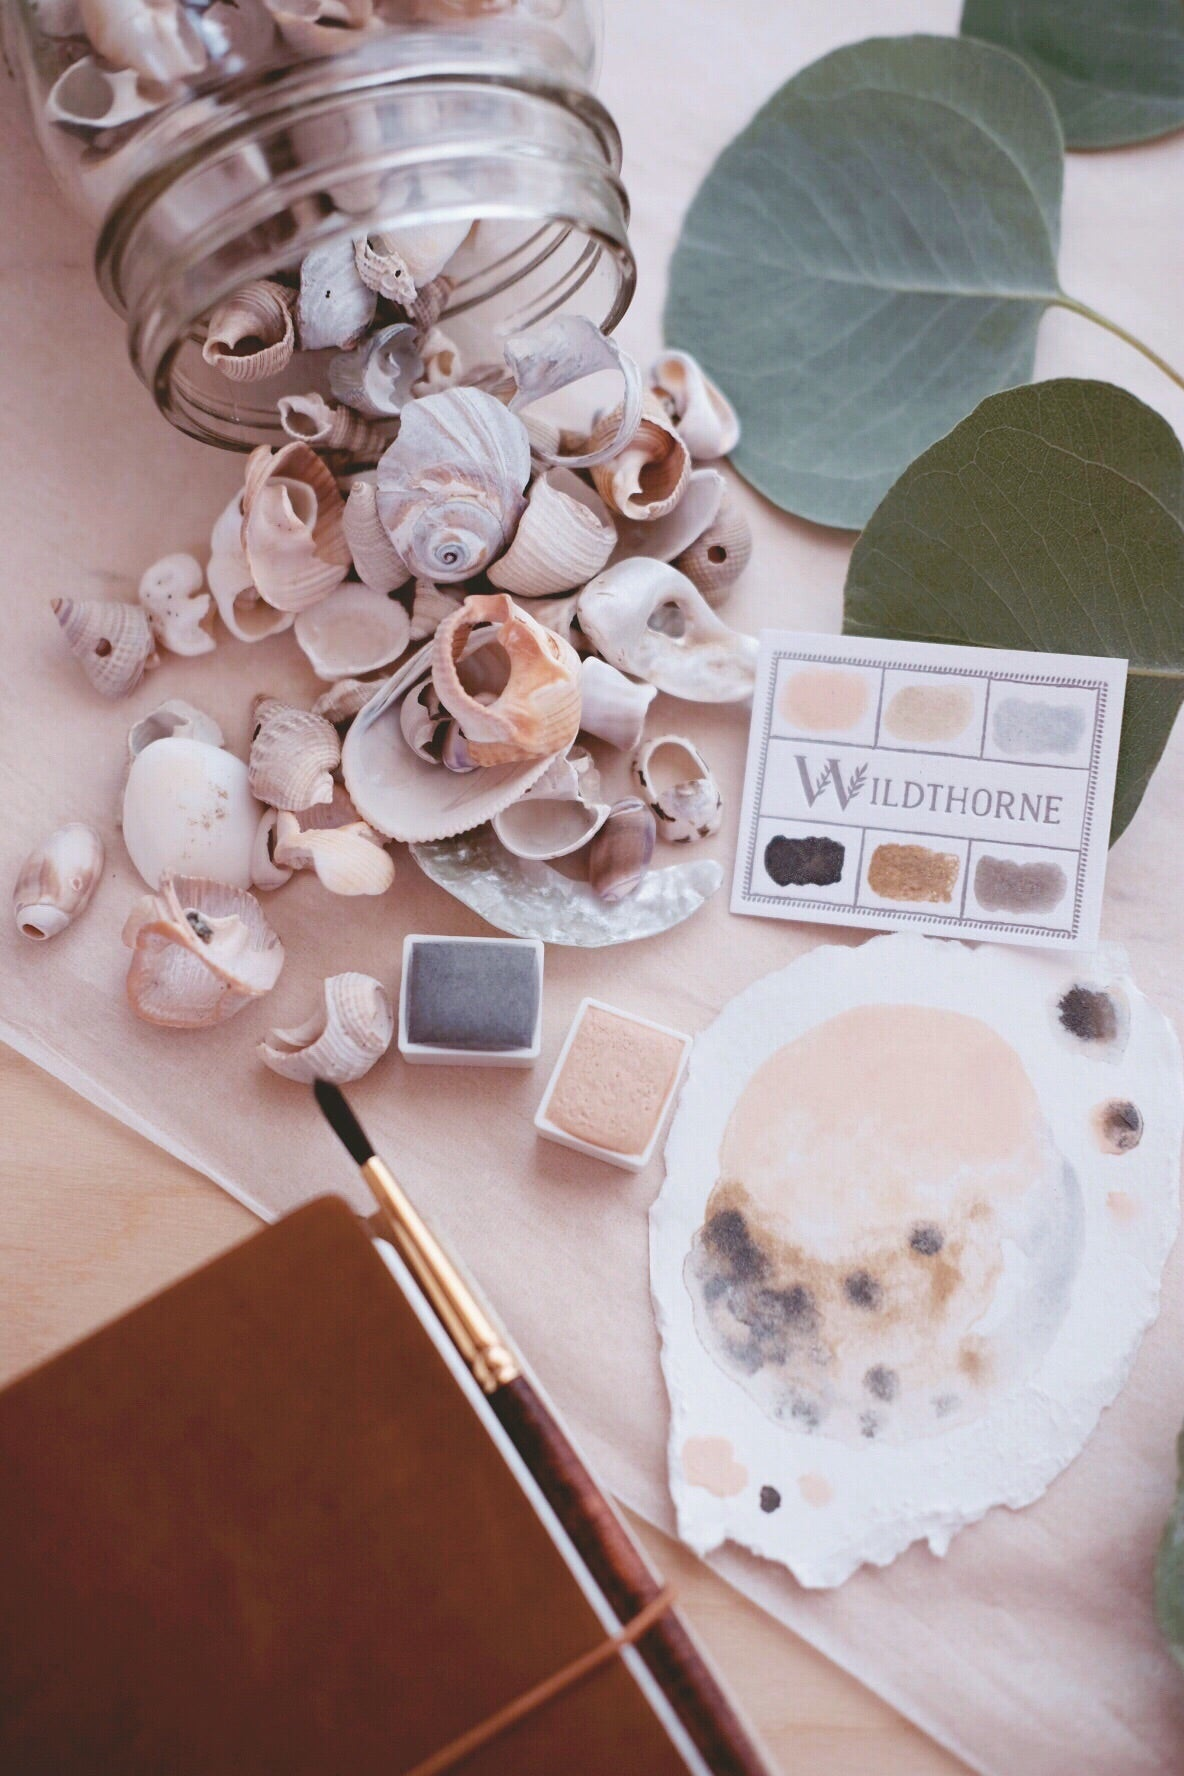 RESERVE for Meg + Seashell Beachcombing - Limited edition Gemstone Mineral watercolor palette